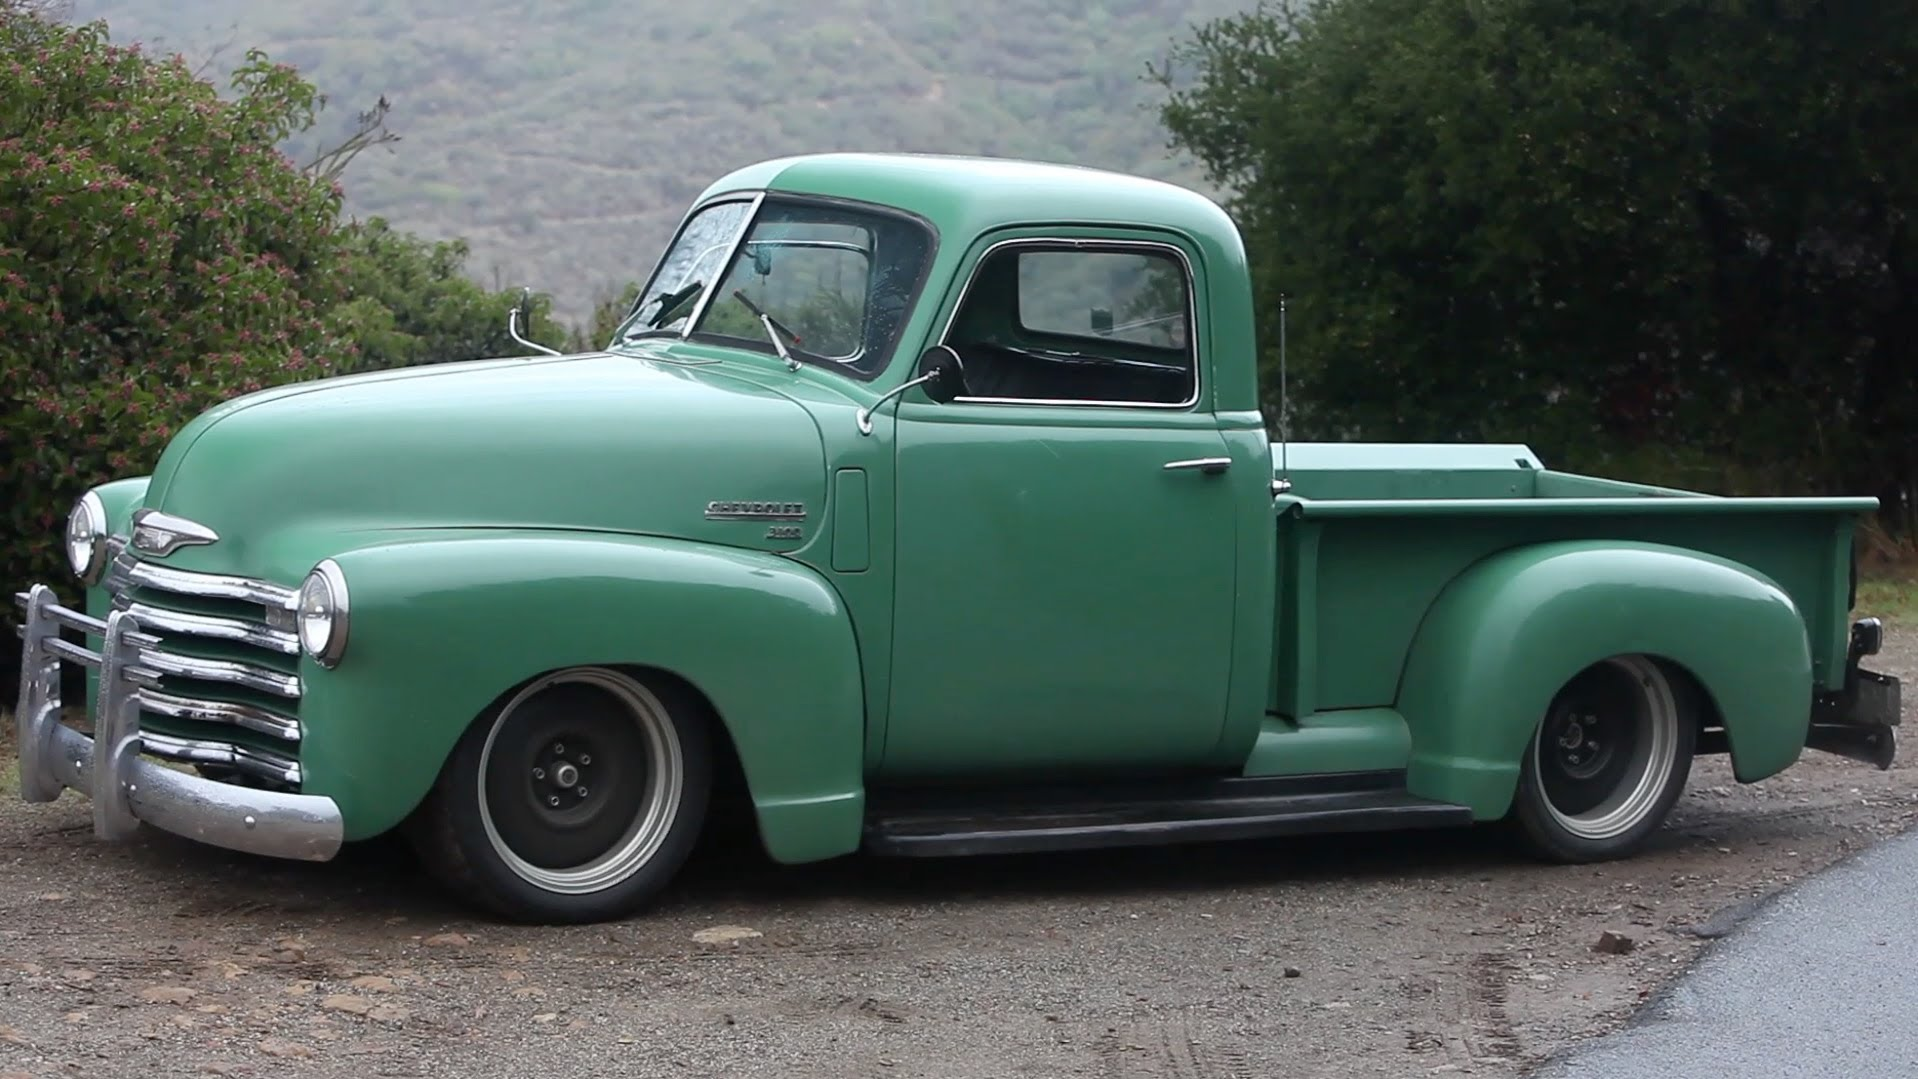 Hot Rods Archives Page 14 Of 20 Legendarylist 1949 Chevy Truck Rod Check Out This Striking 1950 Chevrolet Muscle